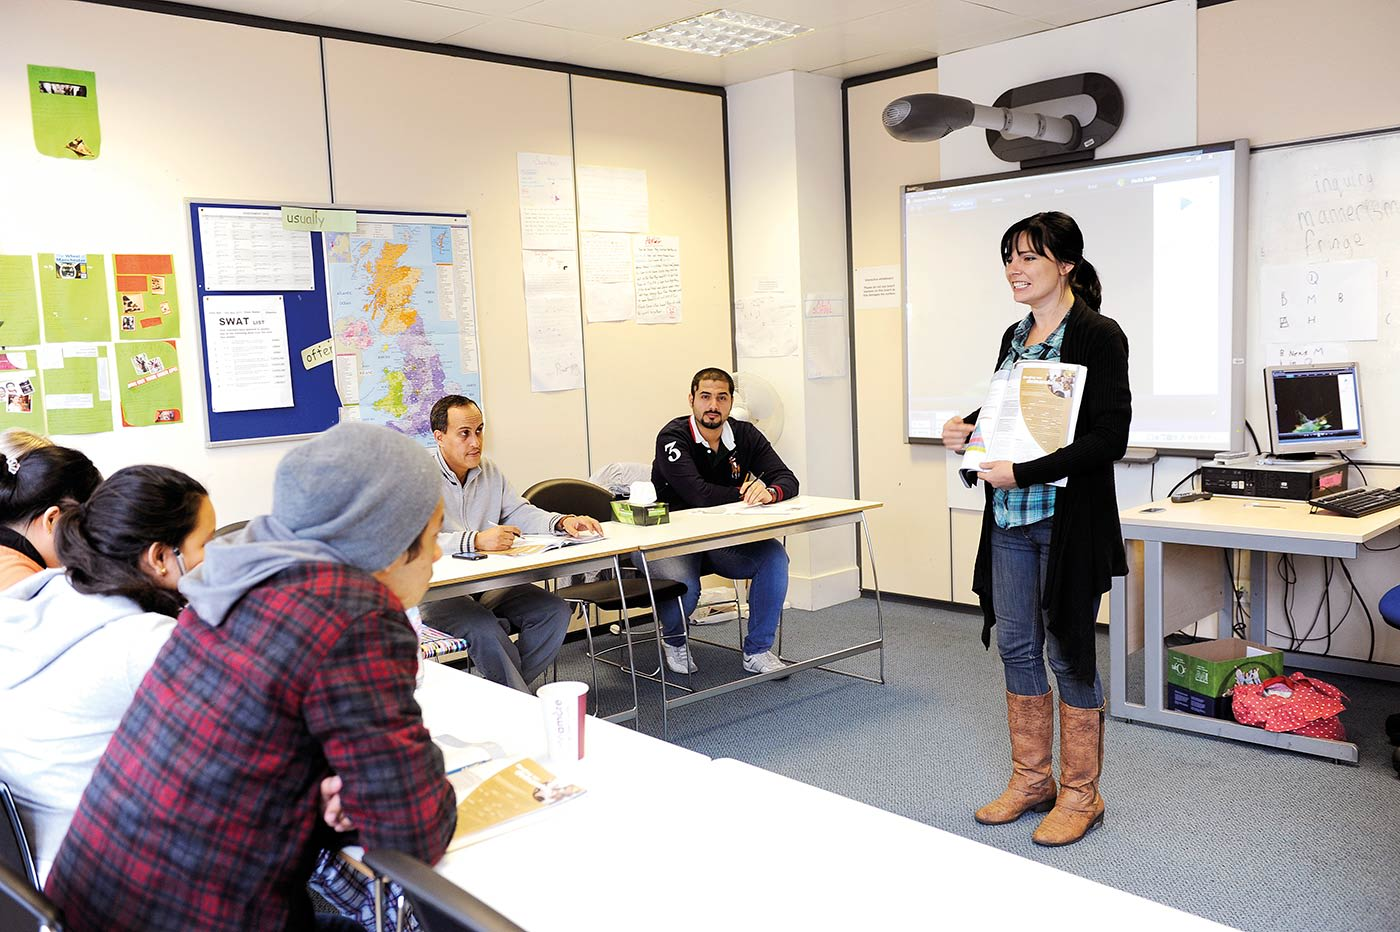 University-style teaching will give you the best possible start